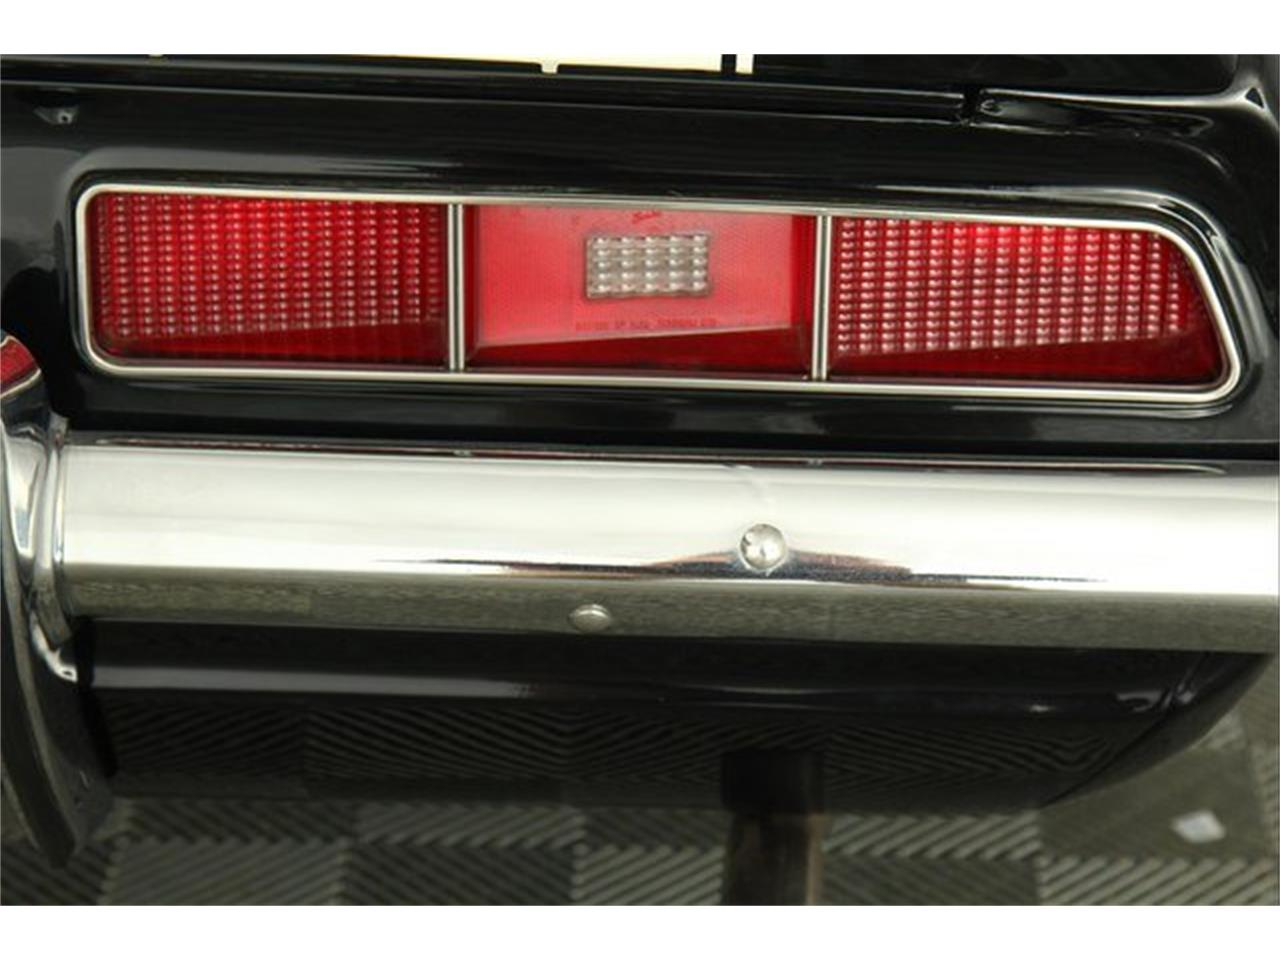 Large Picture of Classic 1969 Camaro located in Elyria Ohio - $71,900.00 Offered by Sunnyside Chevrolet - PJ4L